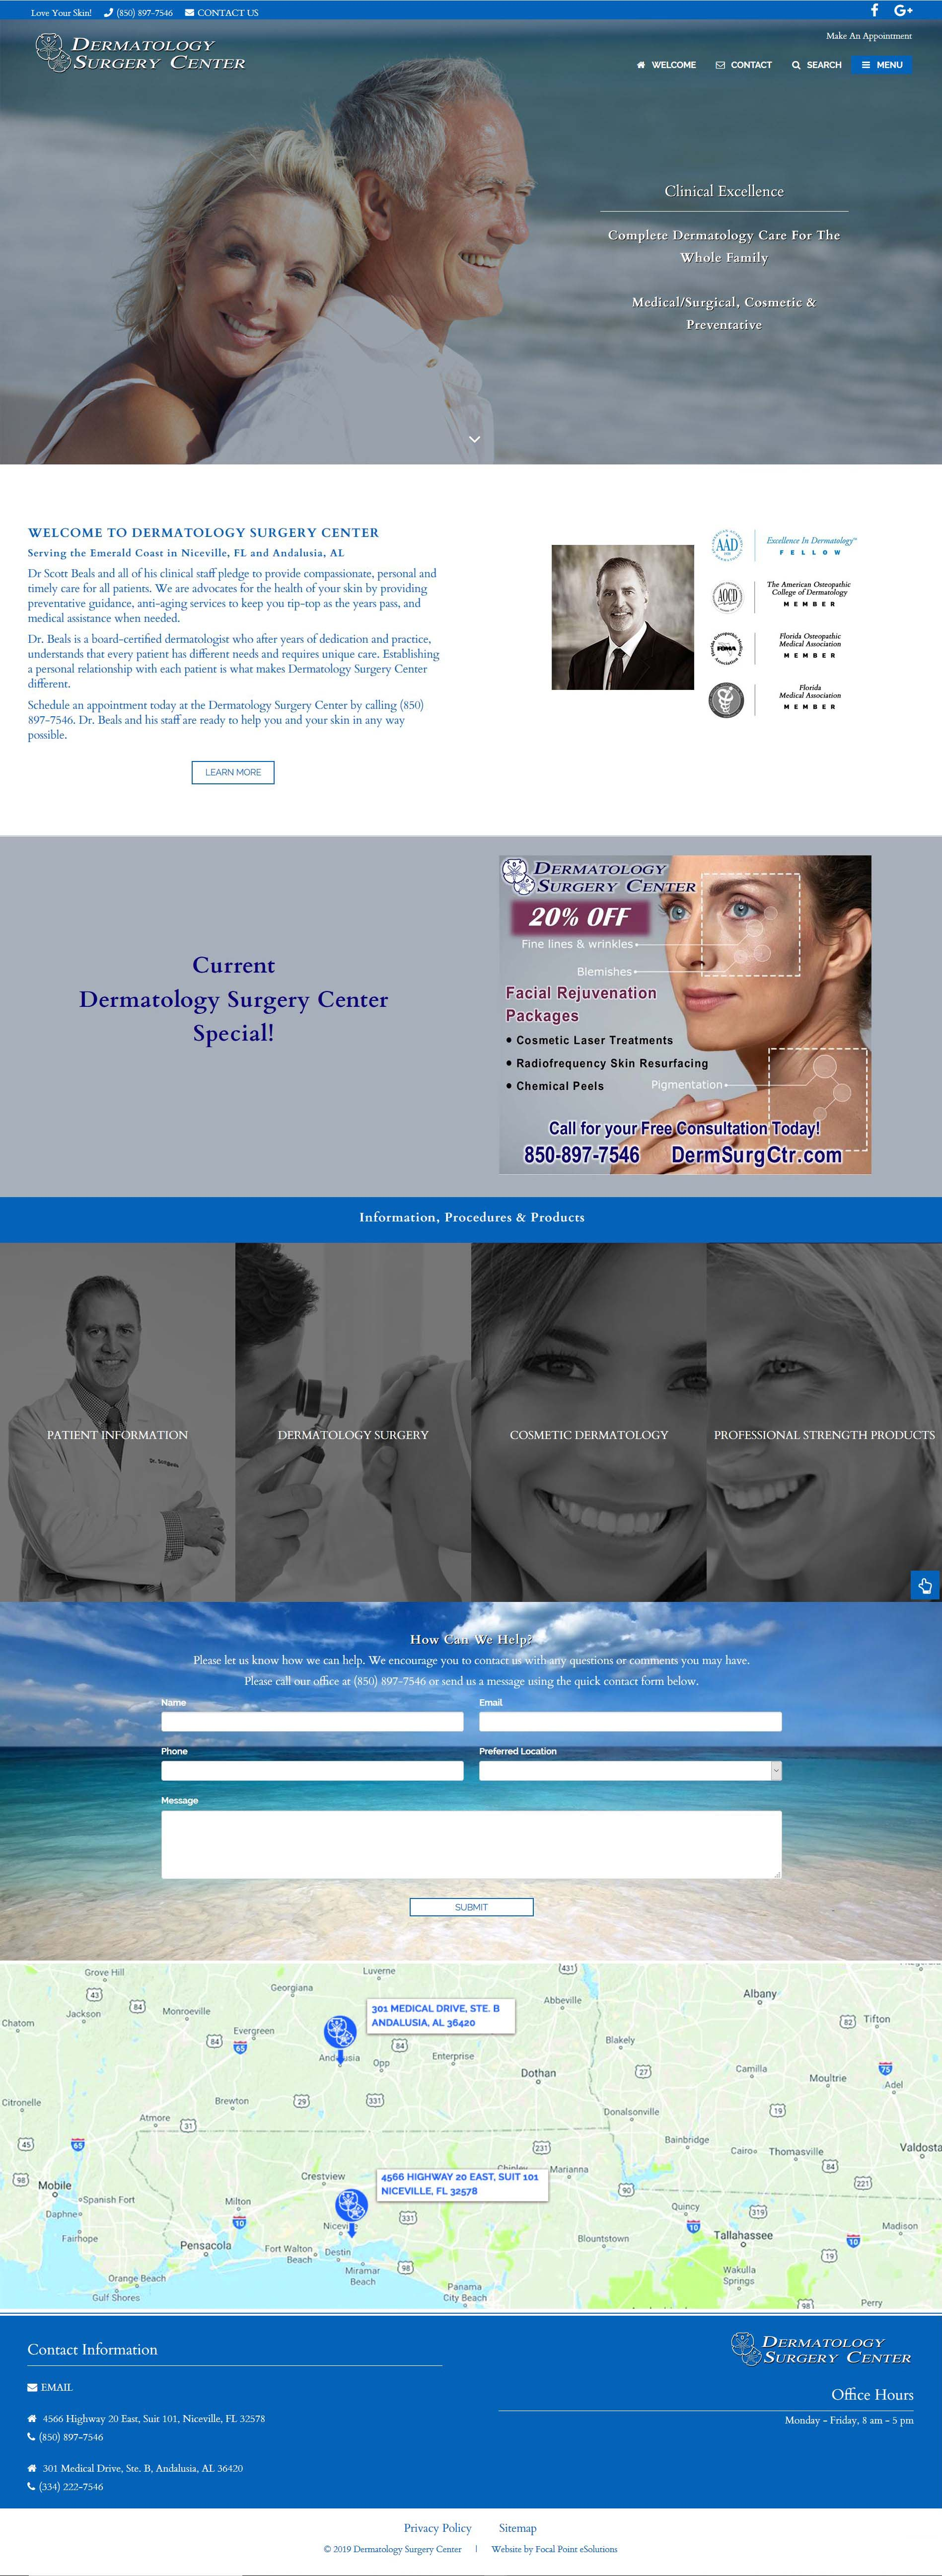 Dermatology Surgery Center Website - Niceville & Andalusia